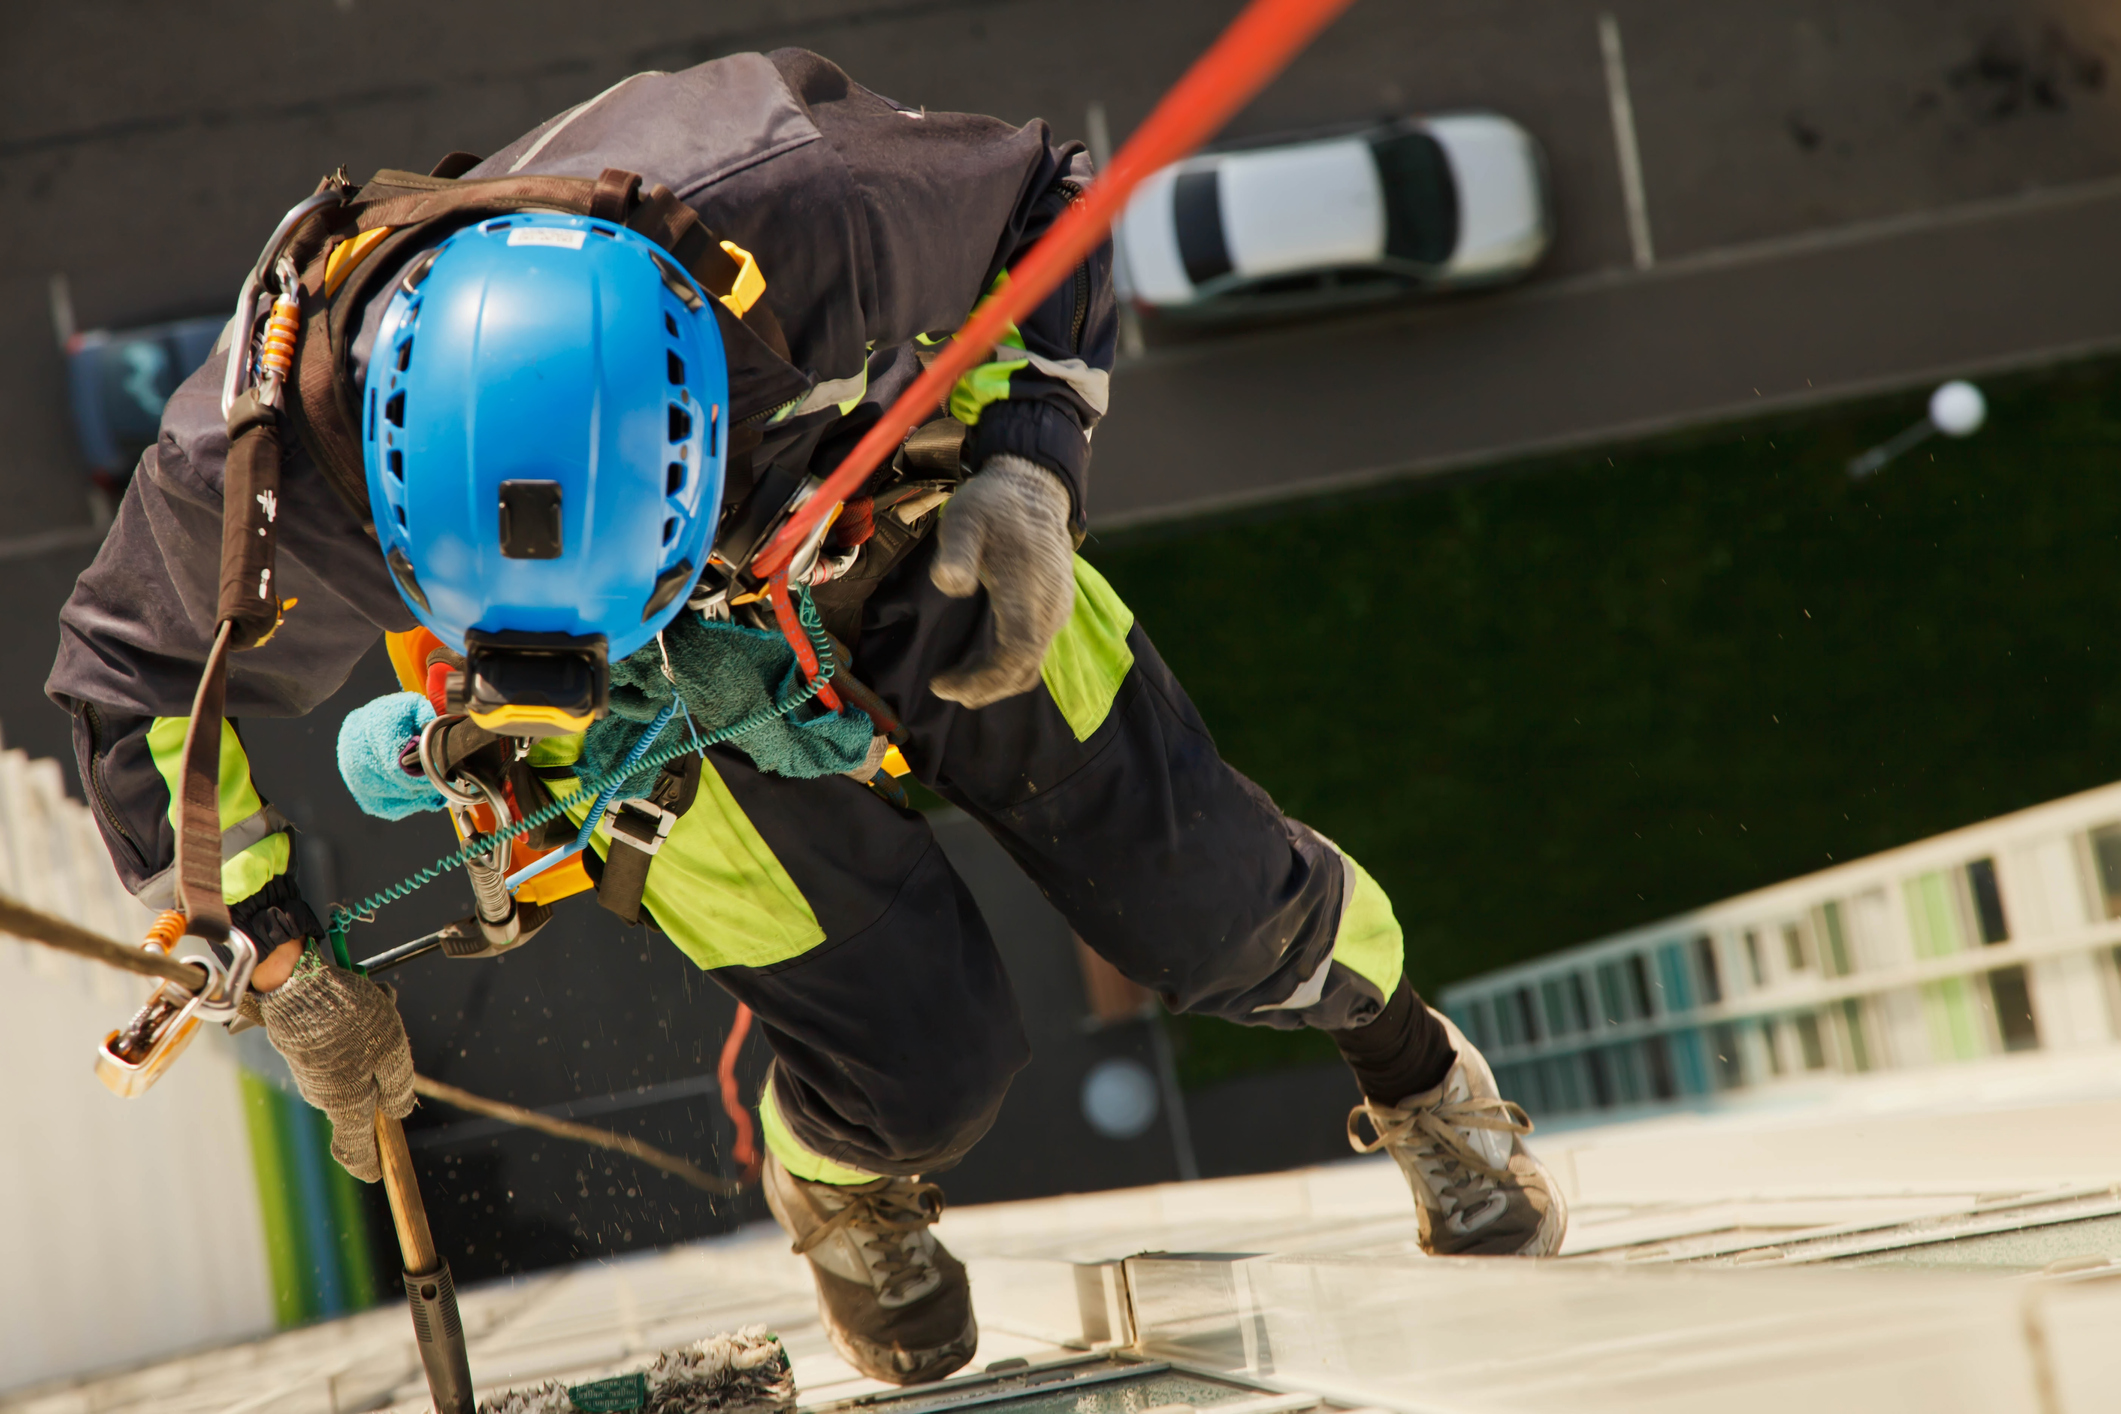 men working in the high with harness